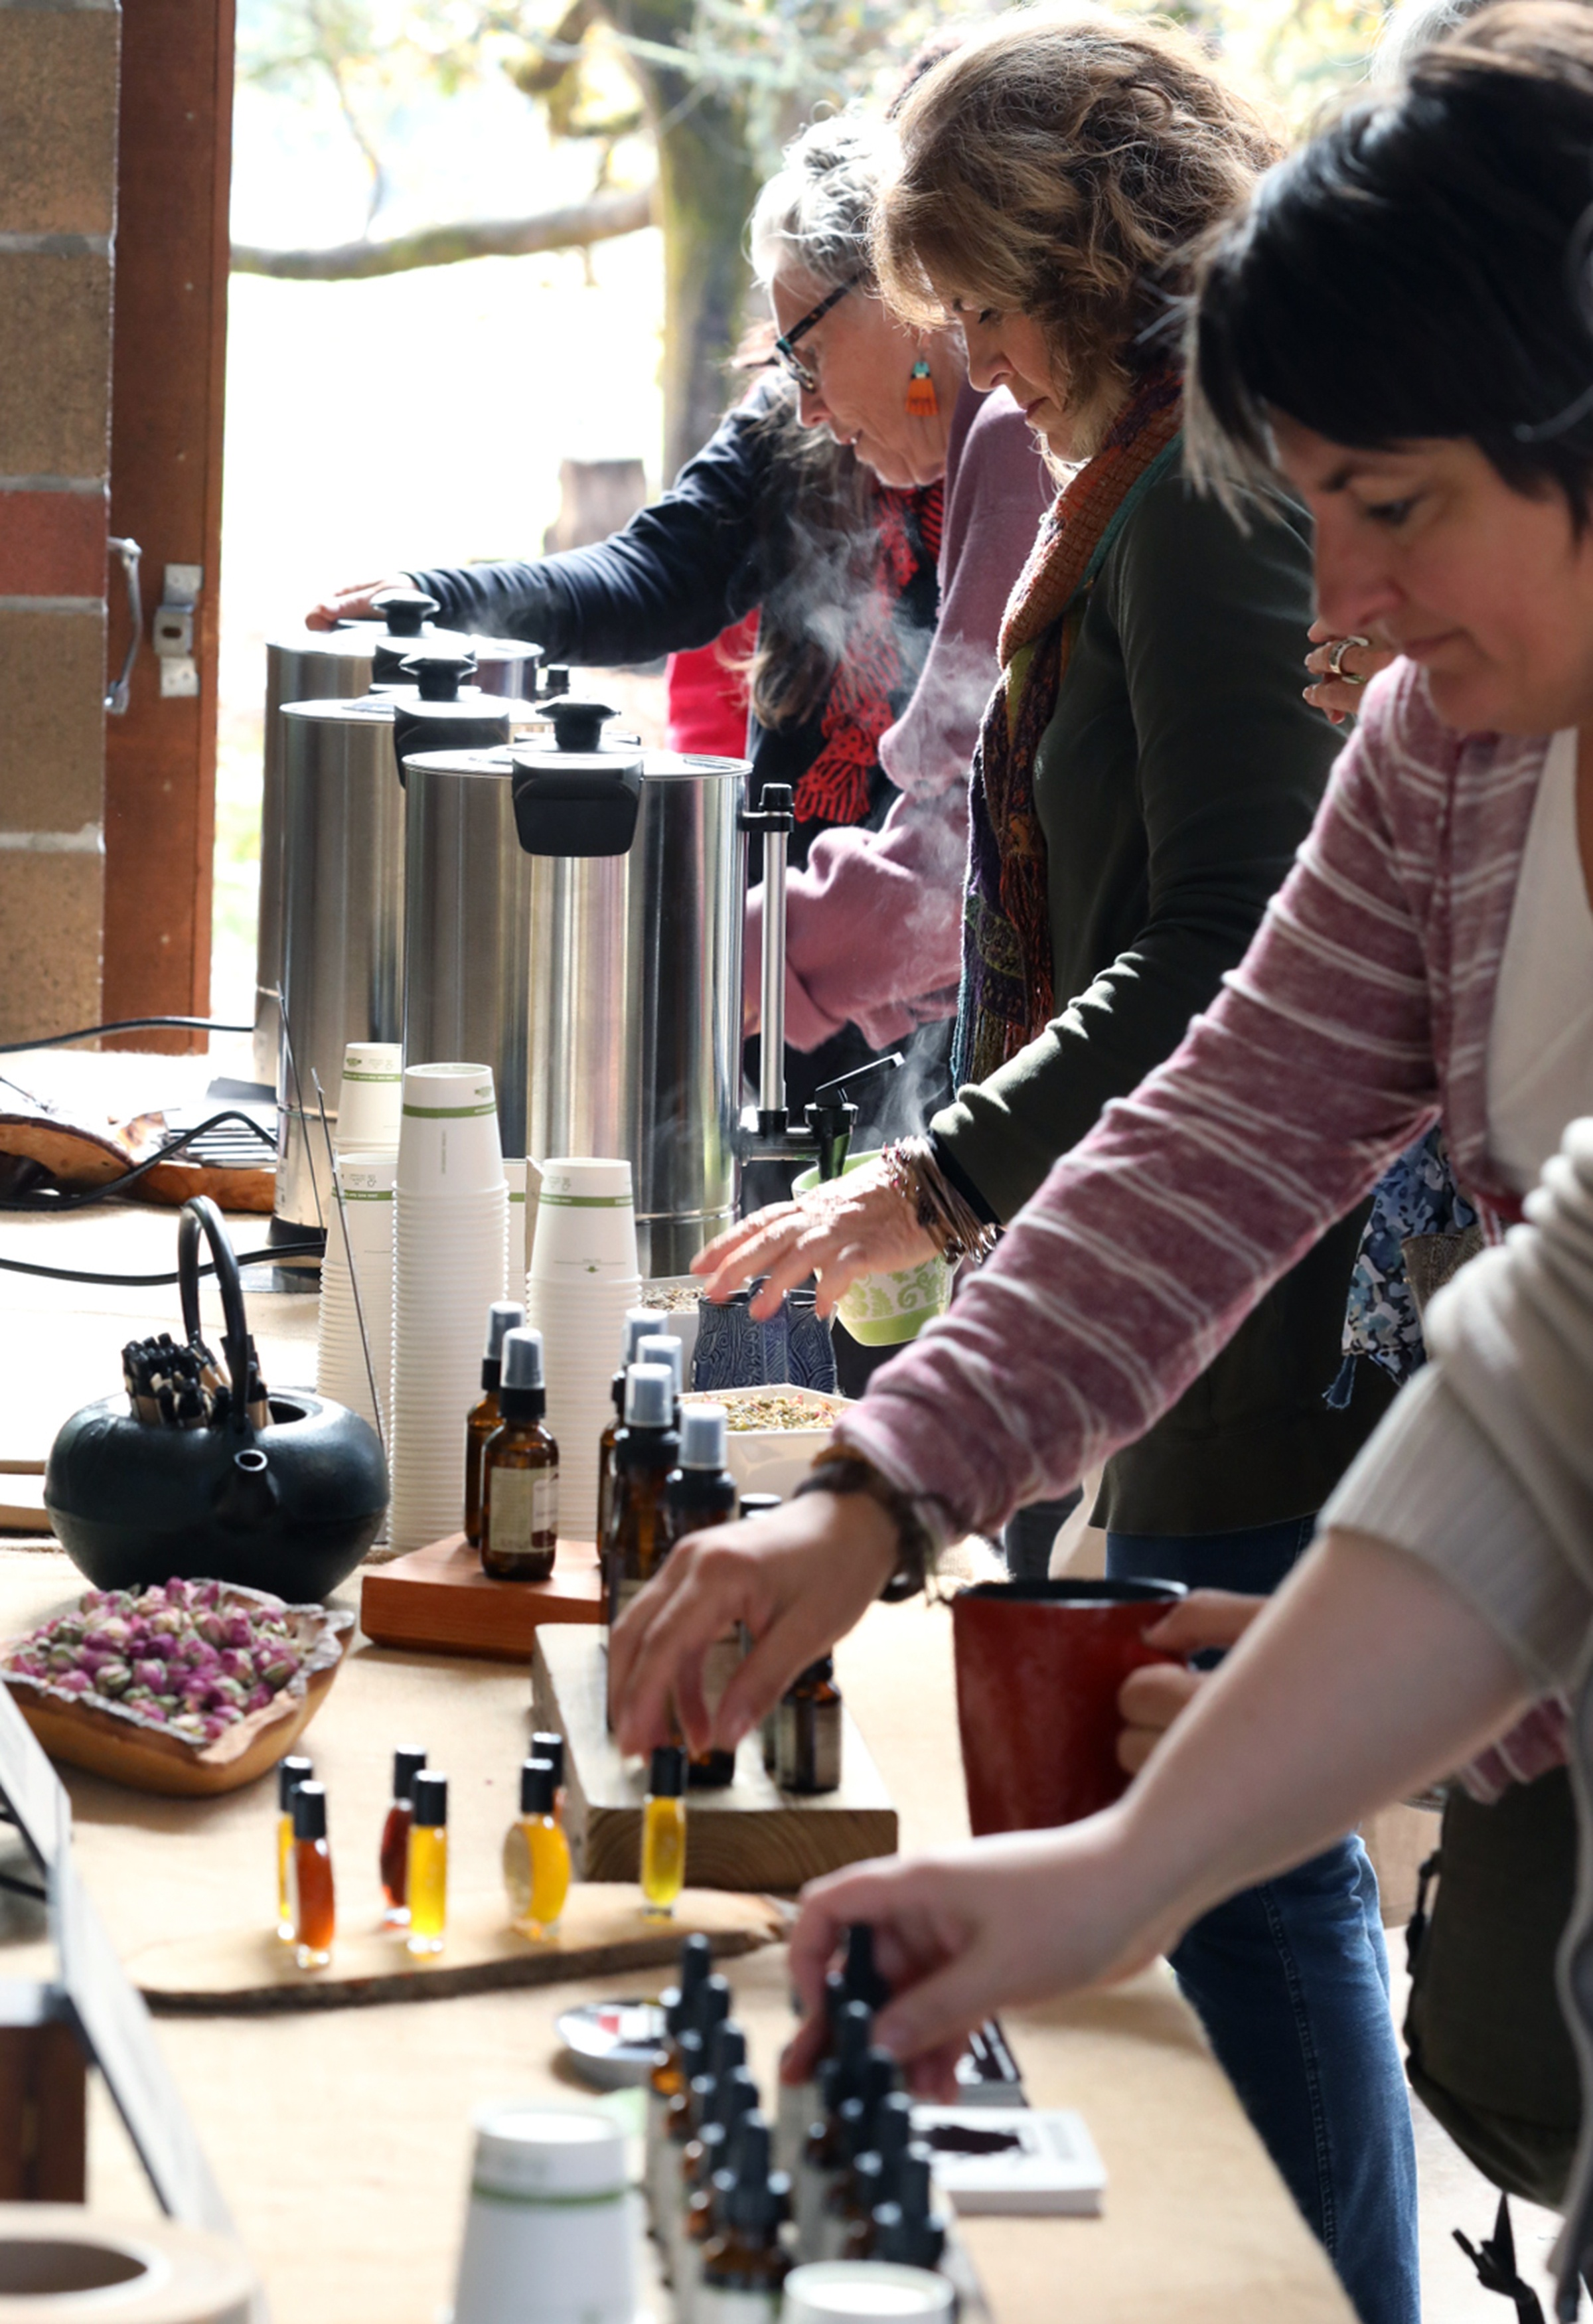 people reaching with hands to try tinctures, aroma sprays and tea at local event